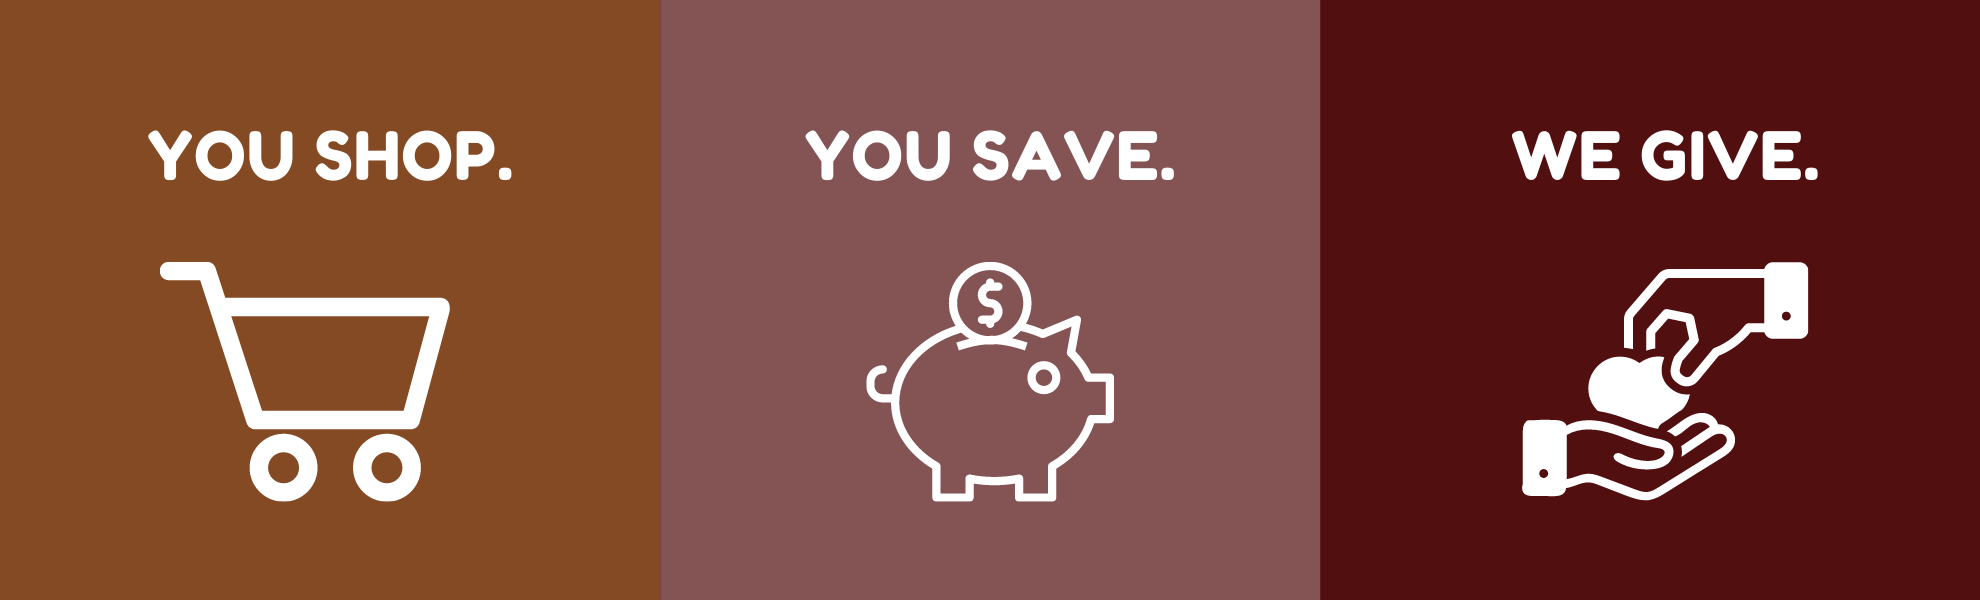 You Shop. You Save. We Give.